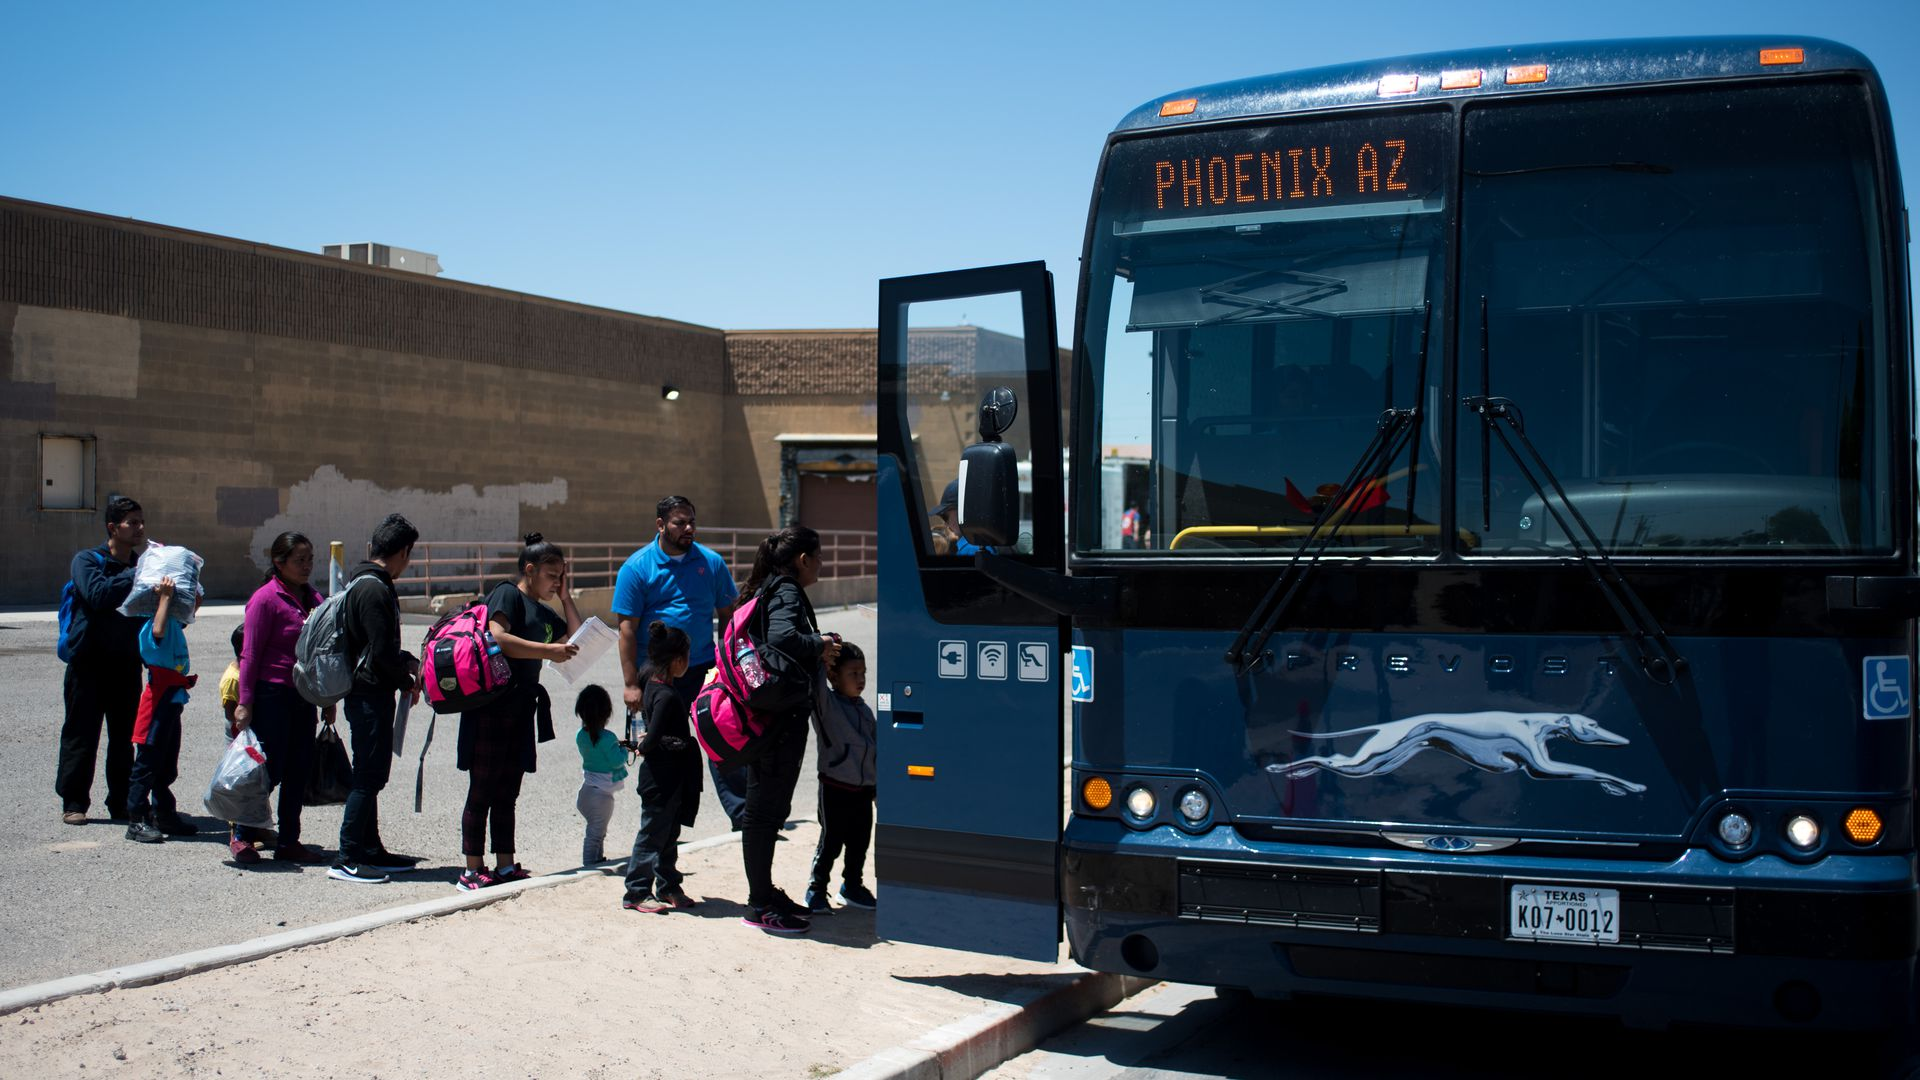 This image shows a line of children boarding a bus.